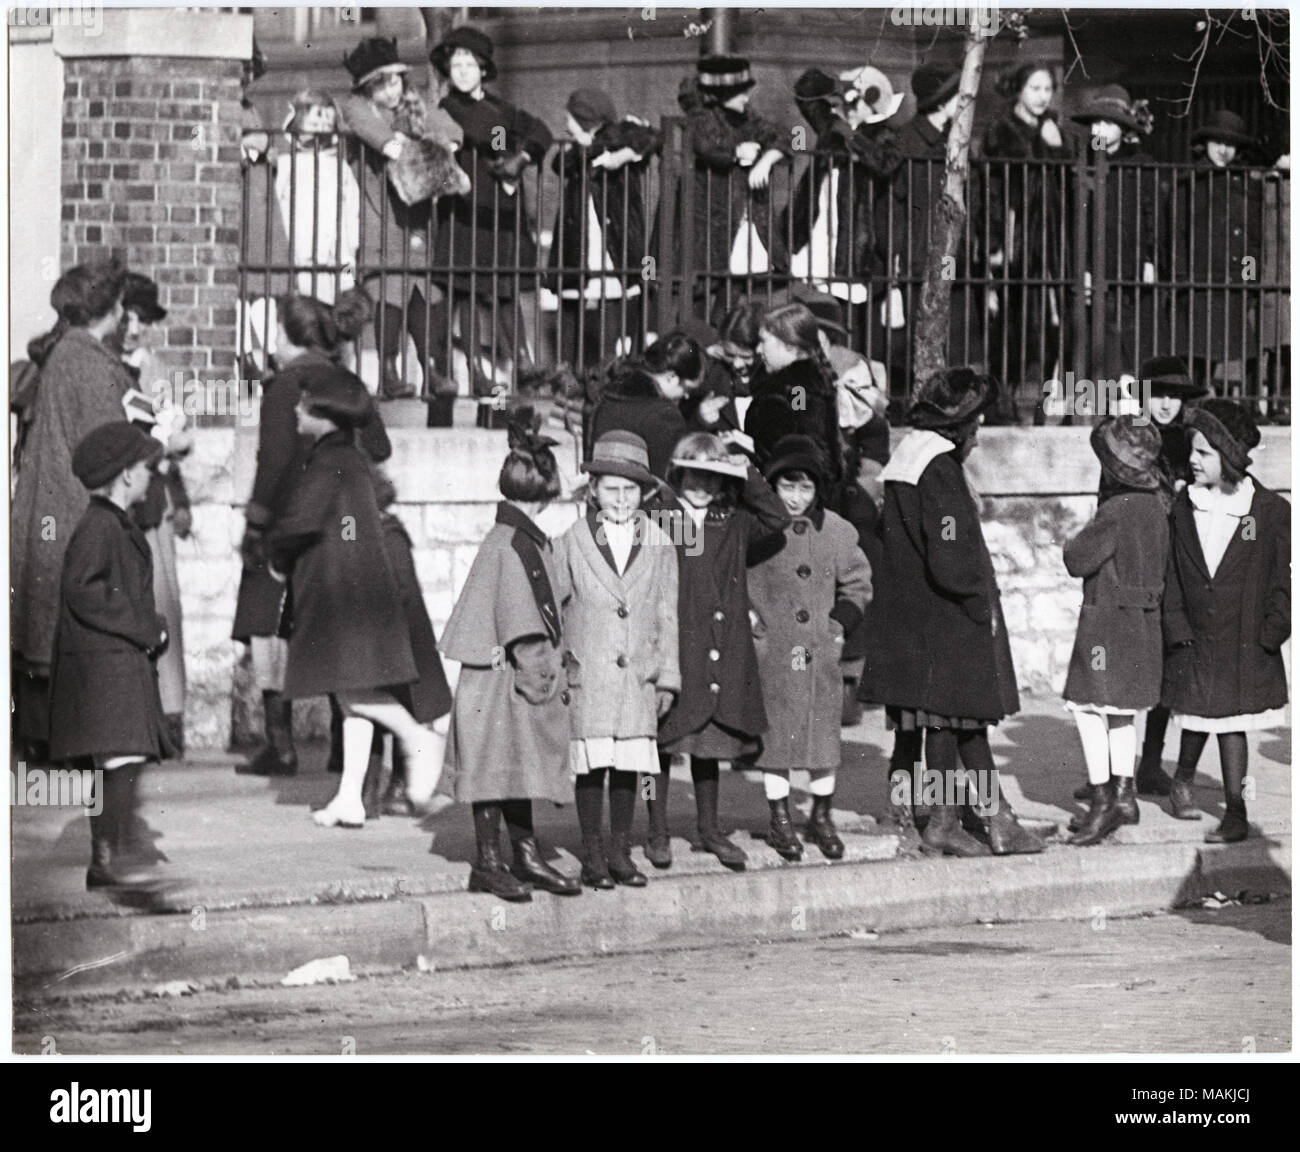 Horizontal black and white photograph showing children outside washington school at 1131 euclid avenue near fountain avenue the foreground shows children